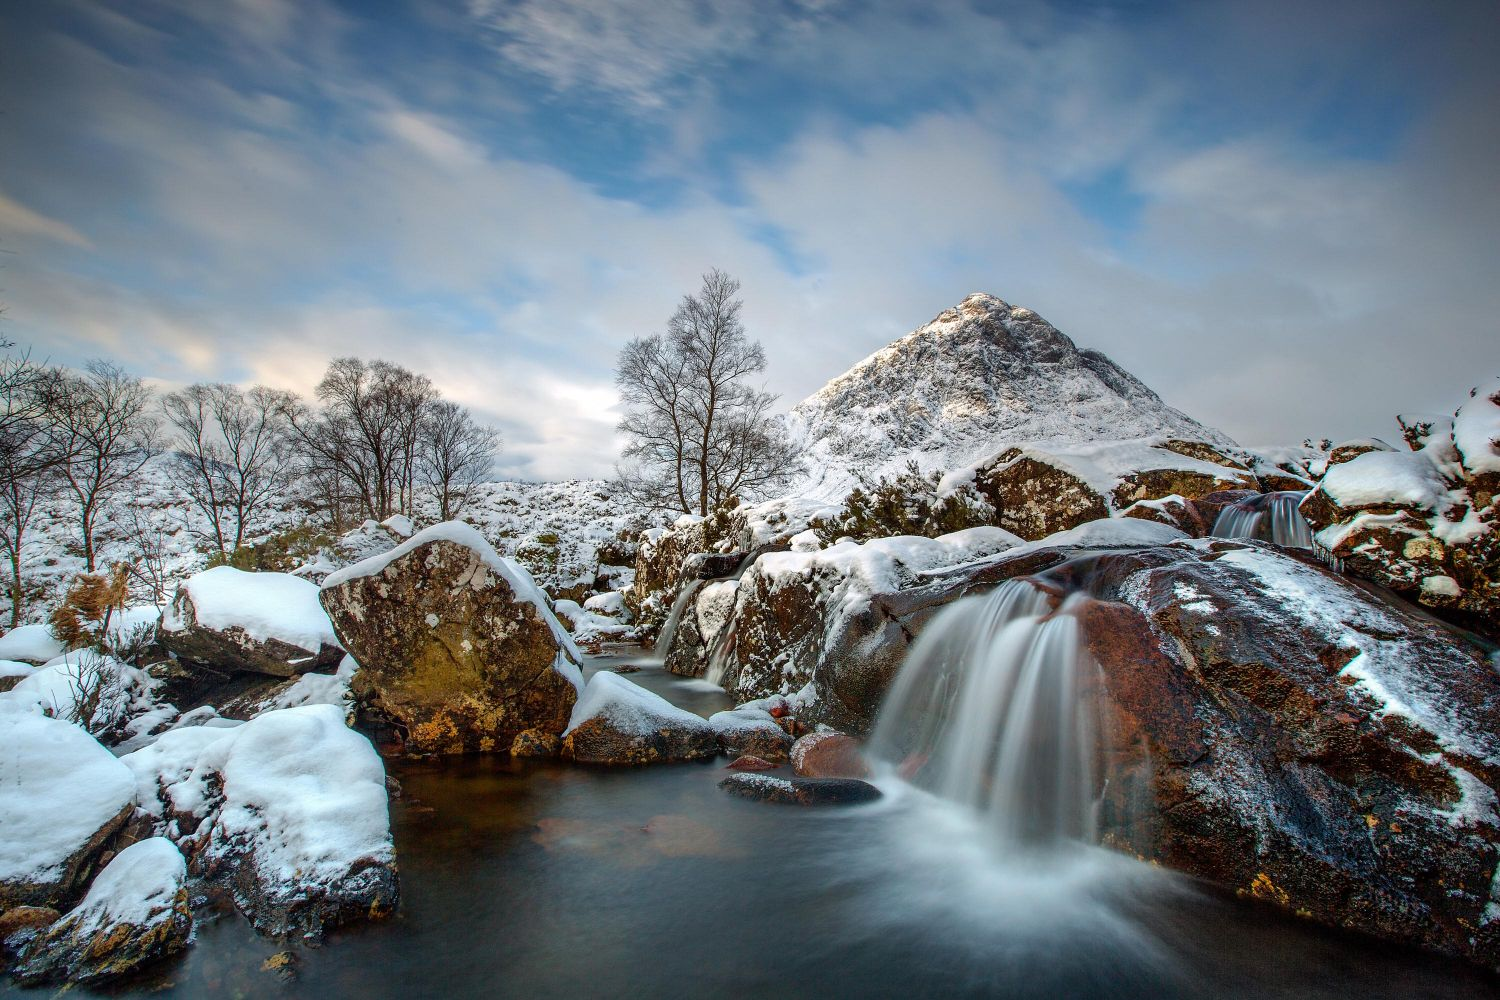 An image of the River Coupall Waterfall and Buachaille Etive Mor deep in winter snow.